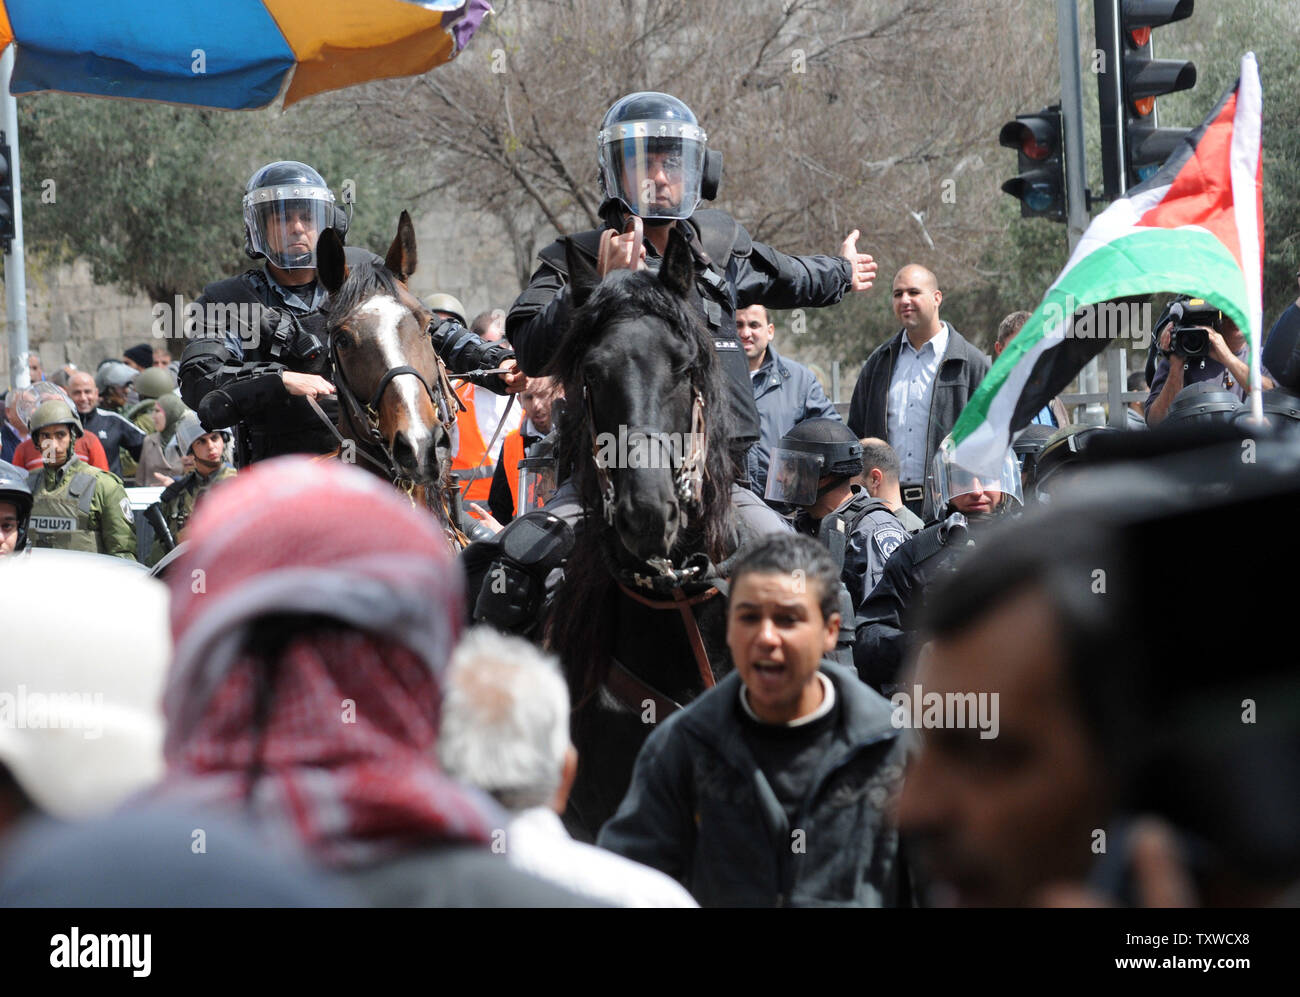 Israeli mounted riot police disperse Palestinians protesters during a demonstration marking Land Day  near the Damascus Gate in East Jerusalem, March 30, 2012. Palestinians chanted slogans against the Israeli occupation and the continued confiscation of Palestinian land.  UPI/Debbie Hill - Stock Image